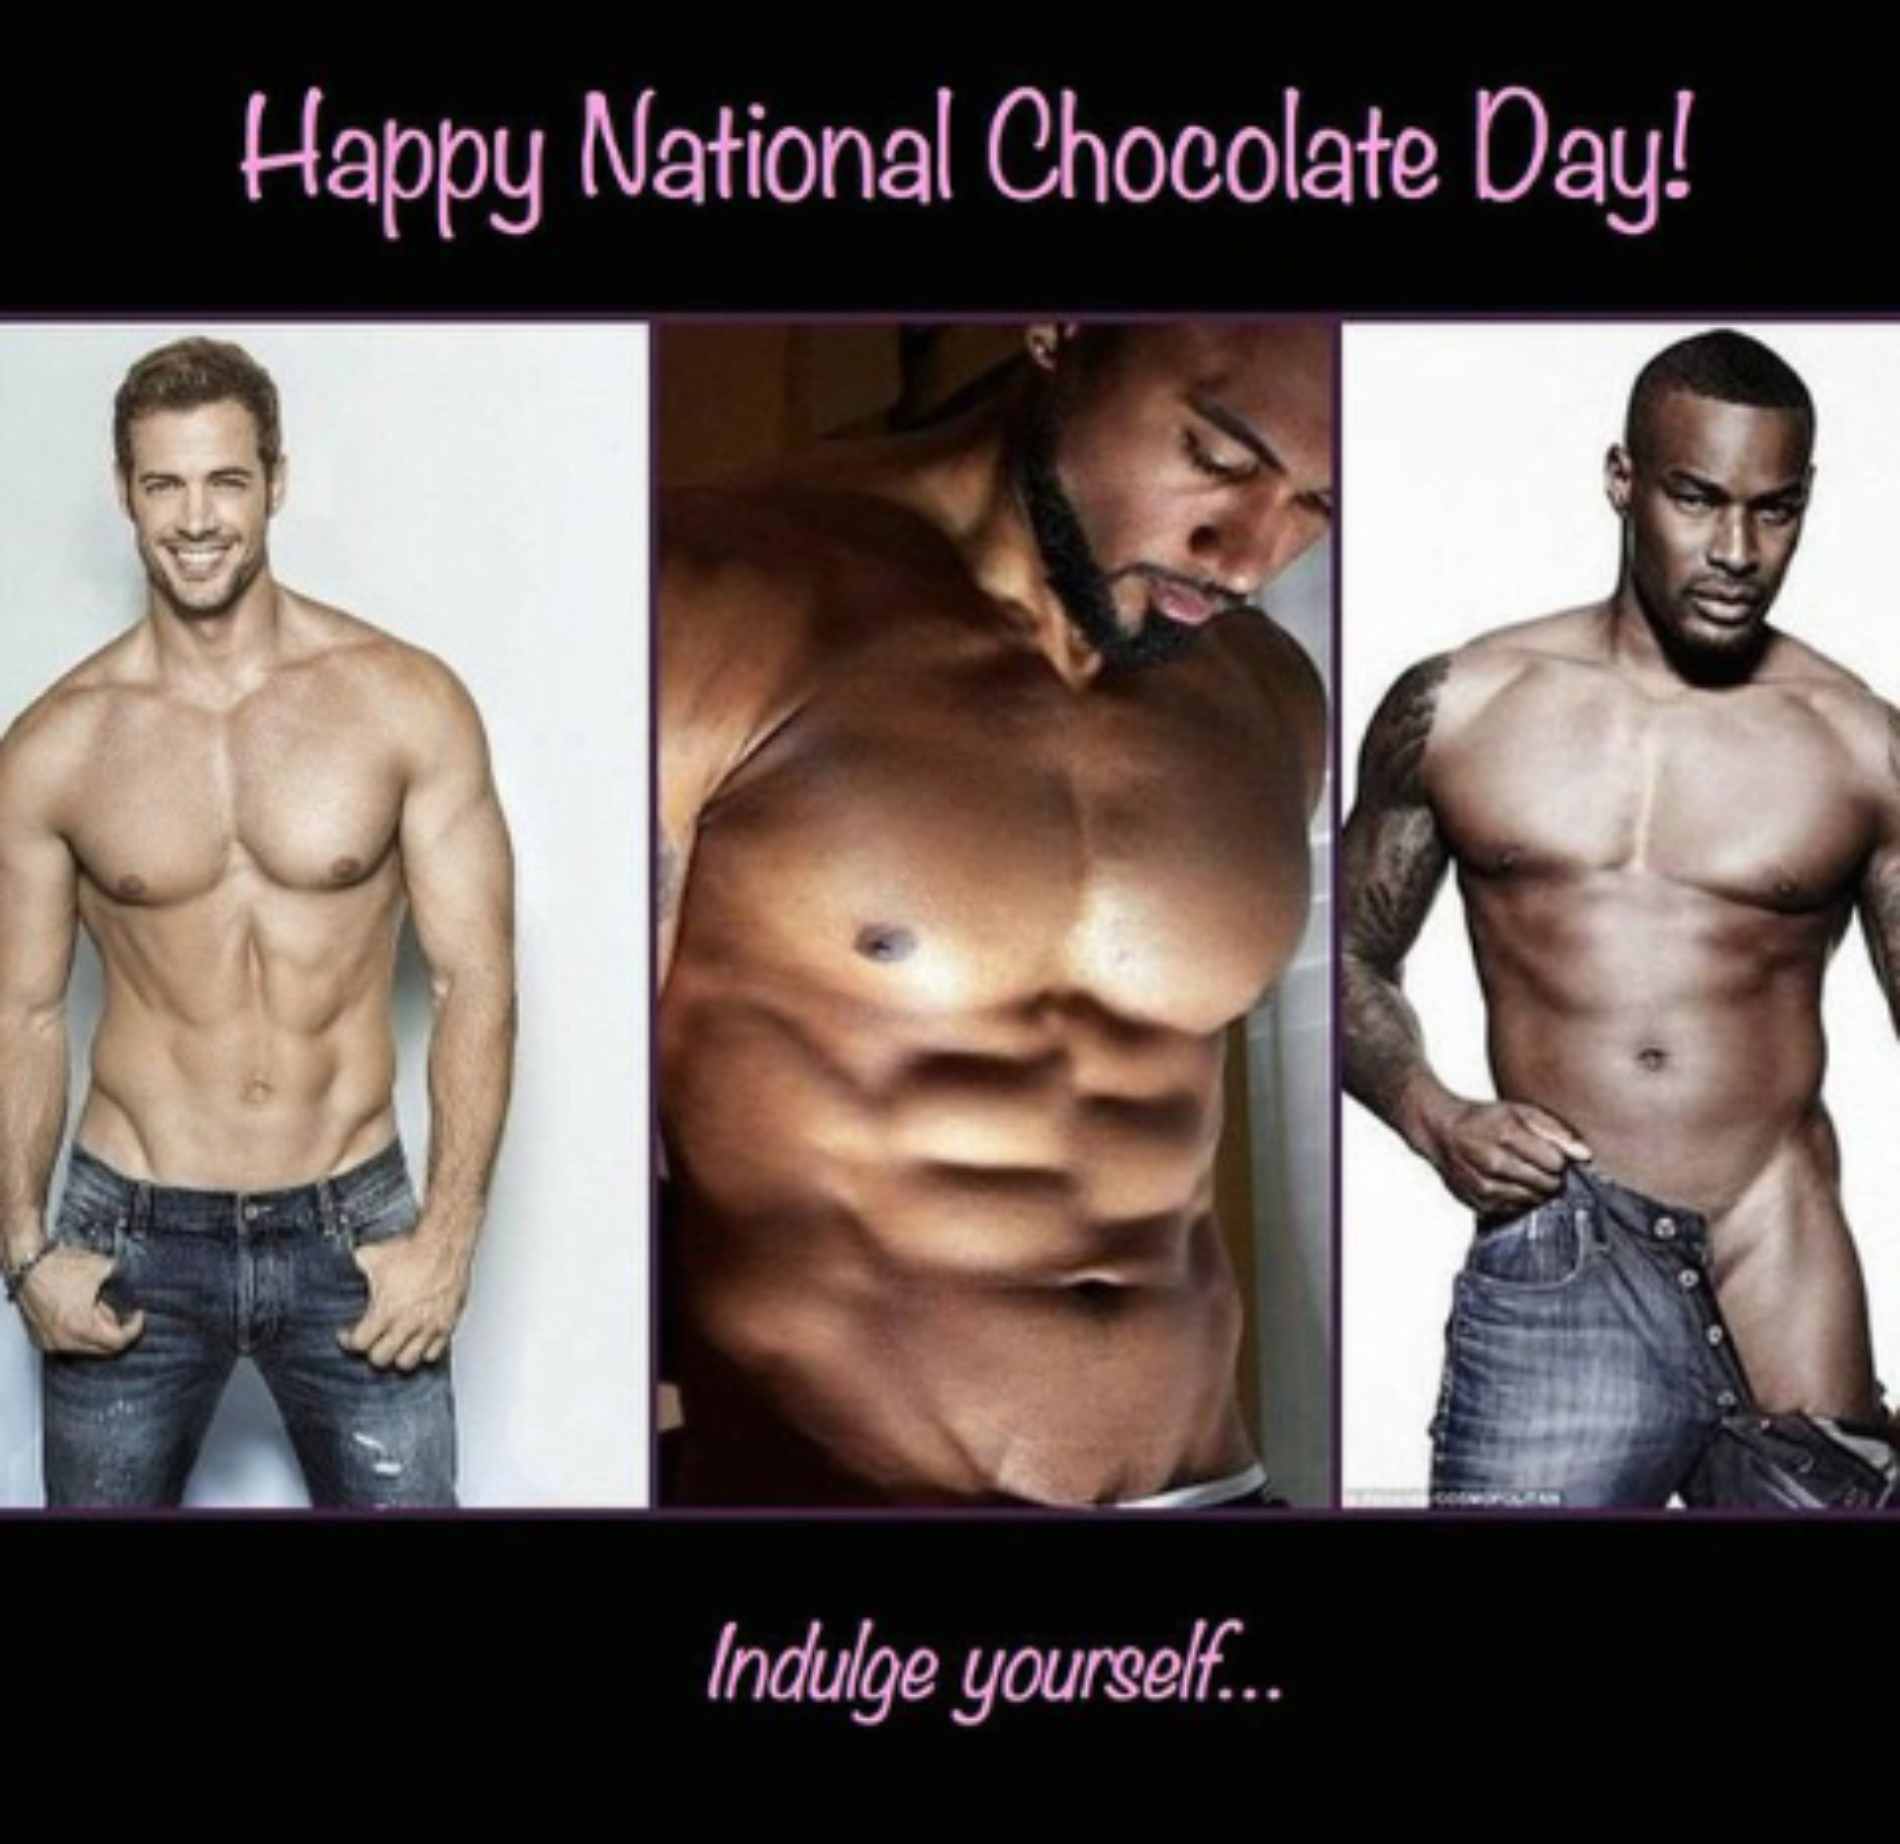 Photo: National Chocolate Day